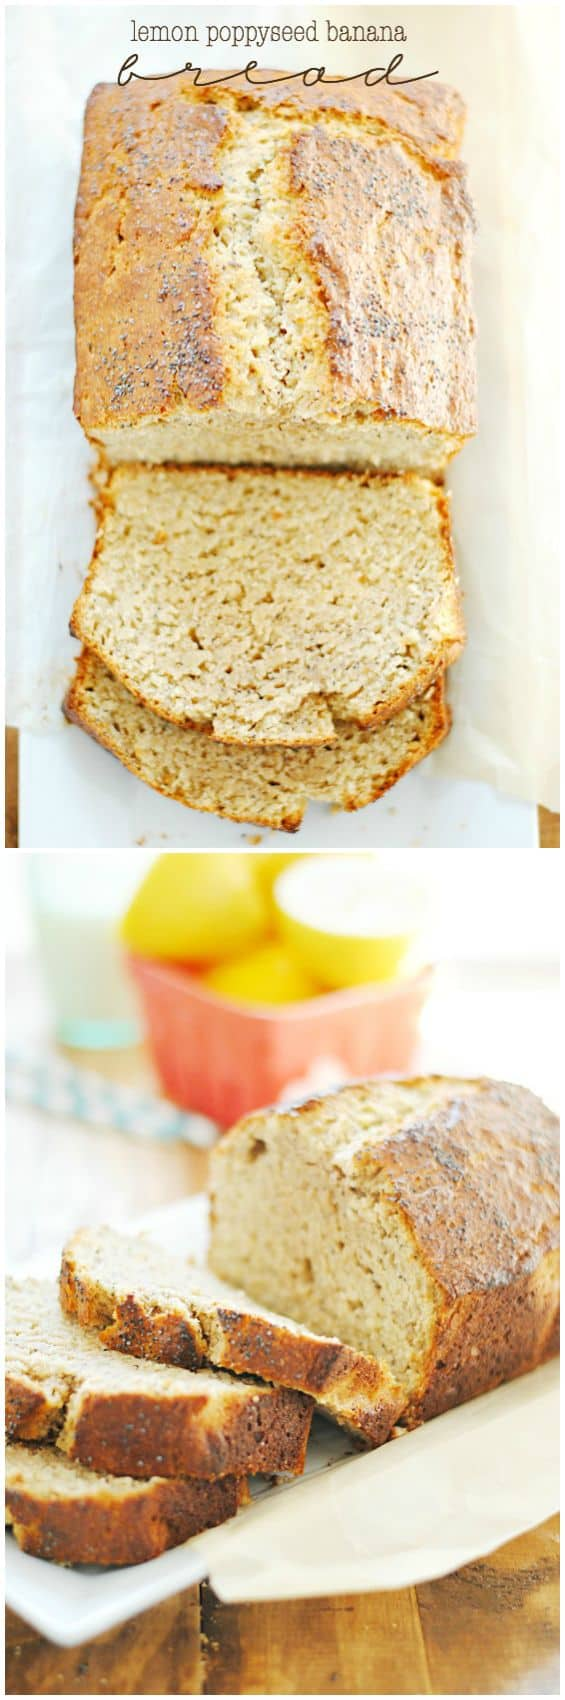 Lemon Poppyseed Banana Bread